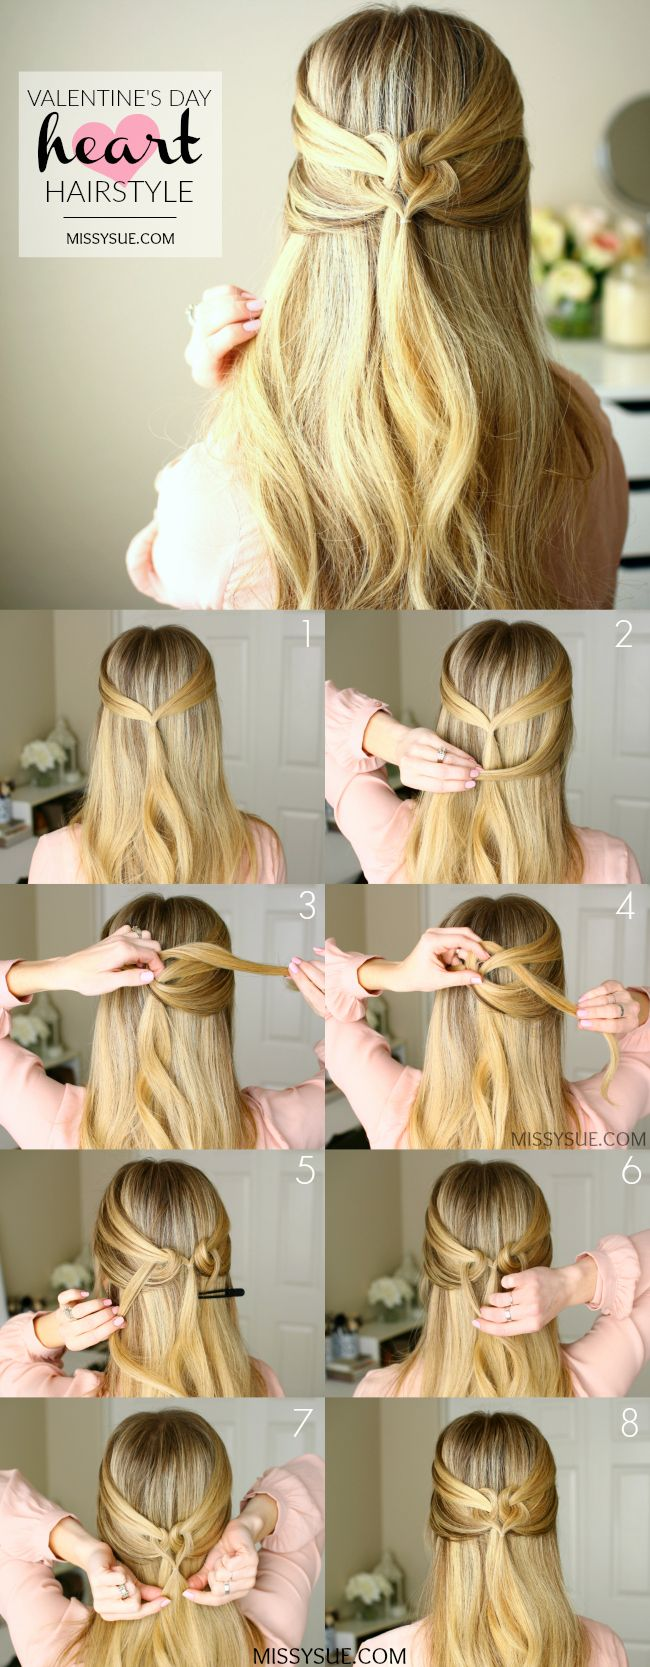 best 25+ different types of hairstyles ideas on pinterest